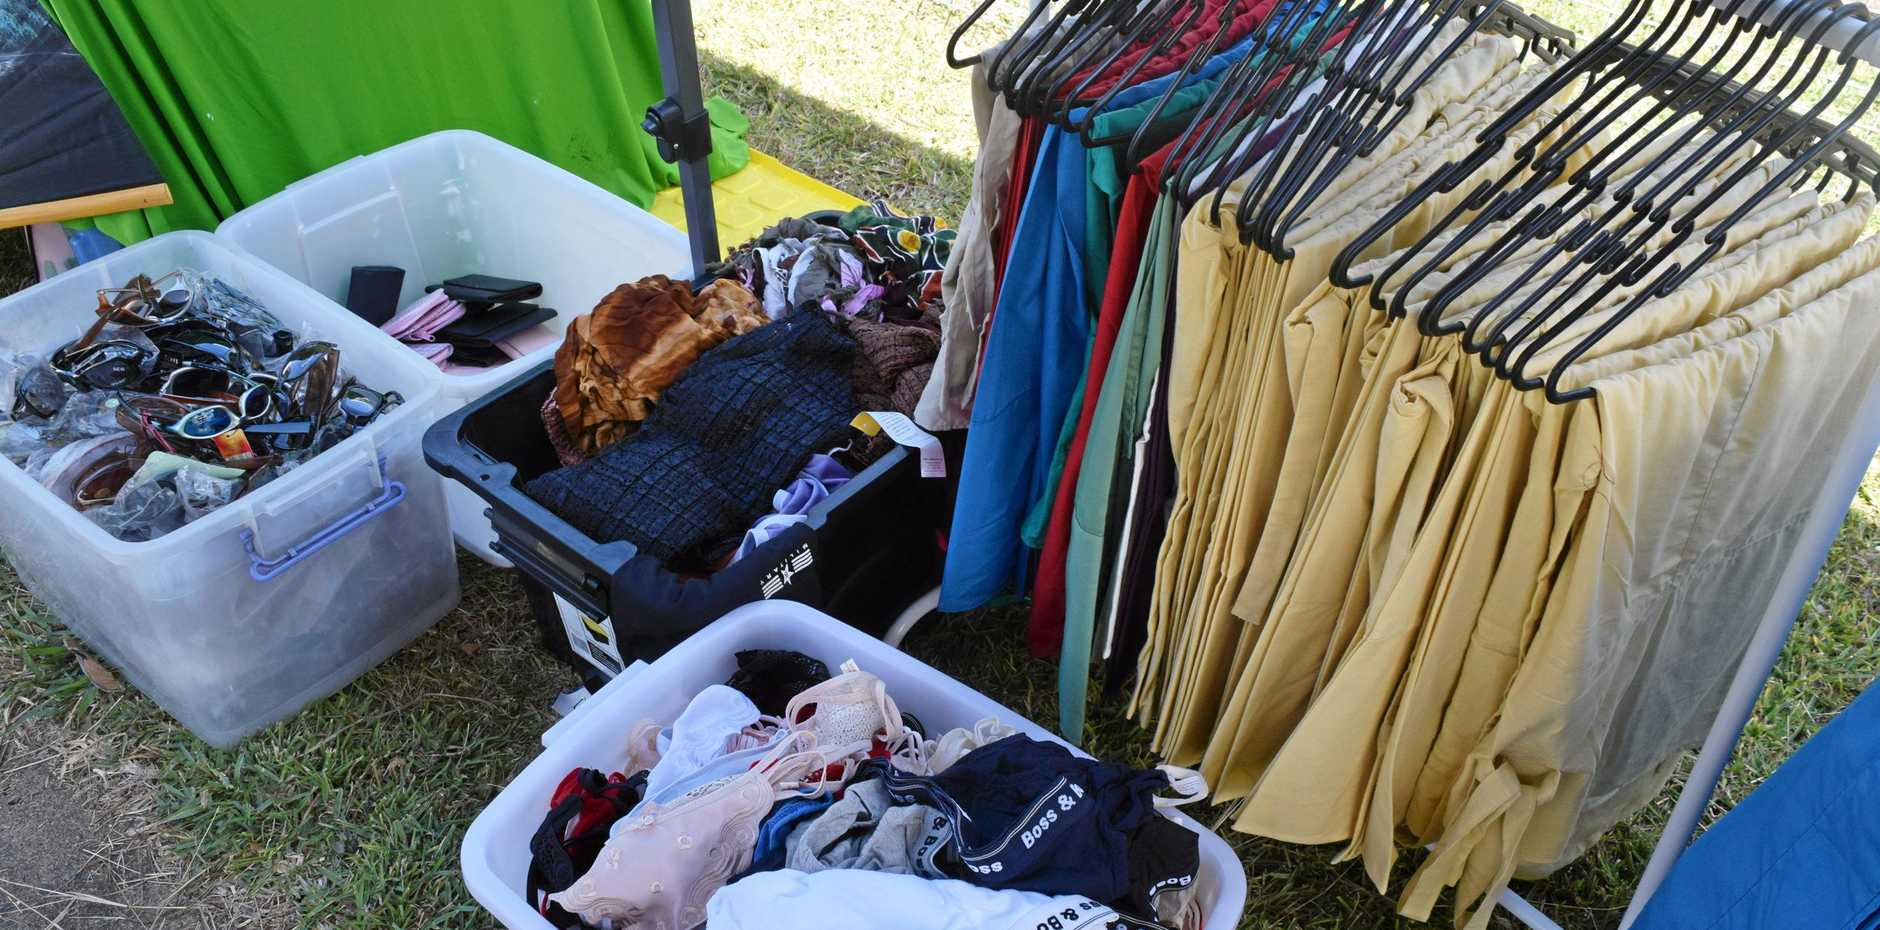 FOR THE KIDS: Modanville Public School's community garage sale will help raise funds for students.